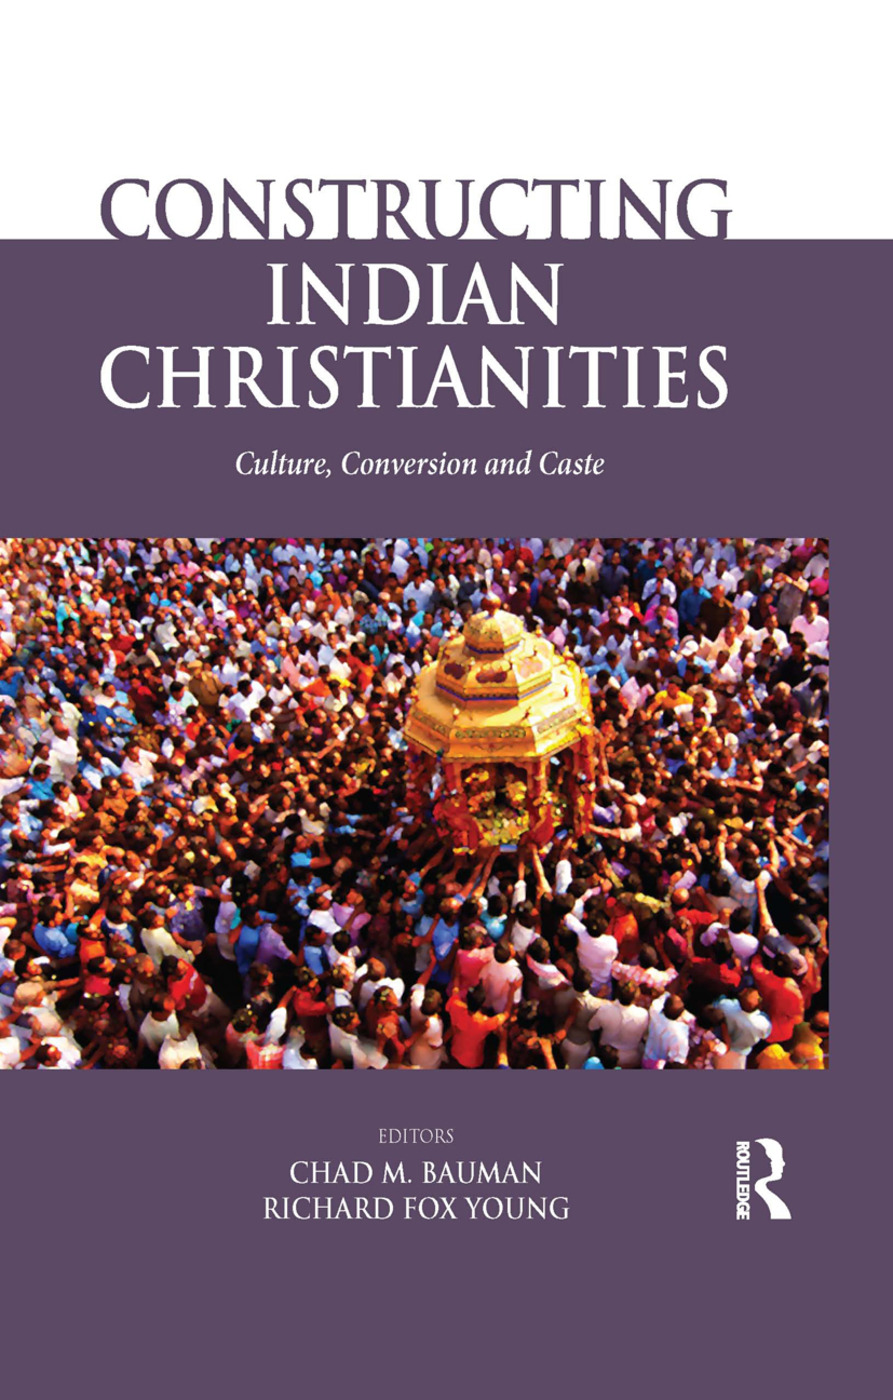 Constructing Indian Christianities: Culture, Conversion and Caste book cover